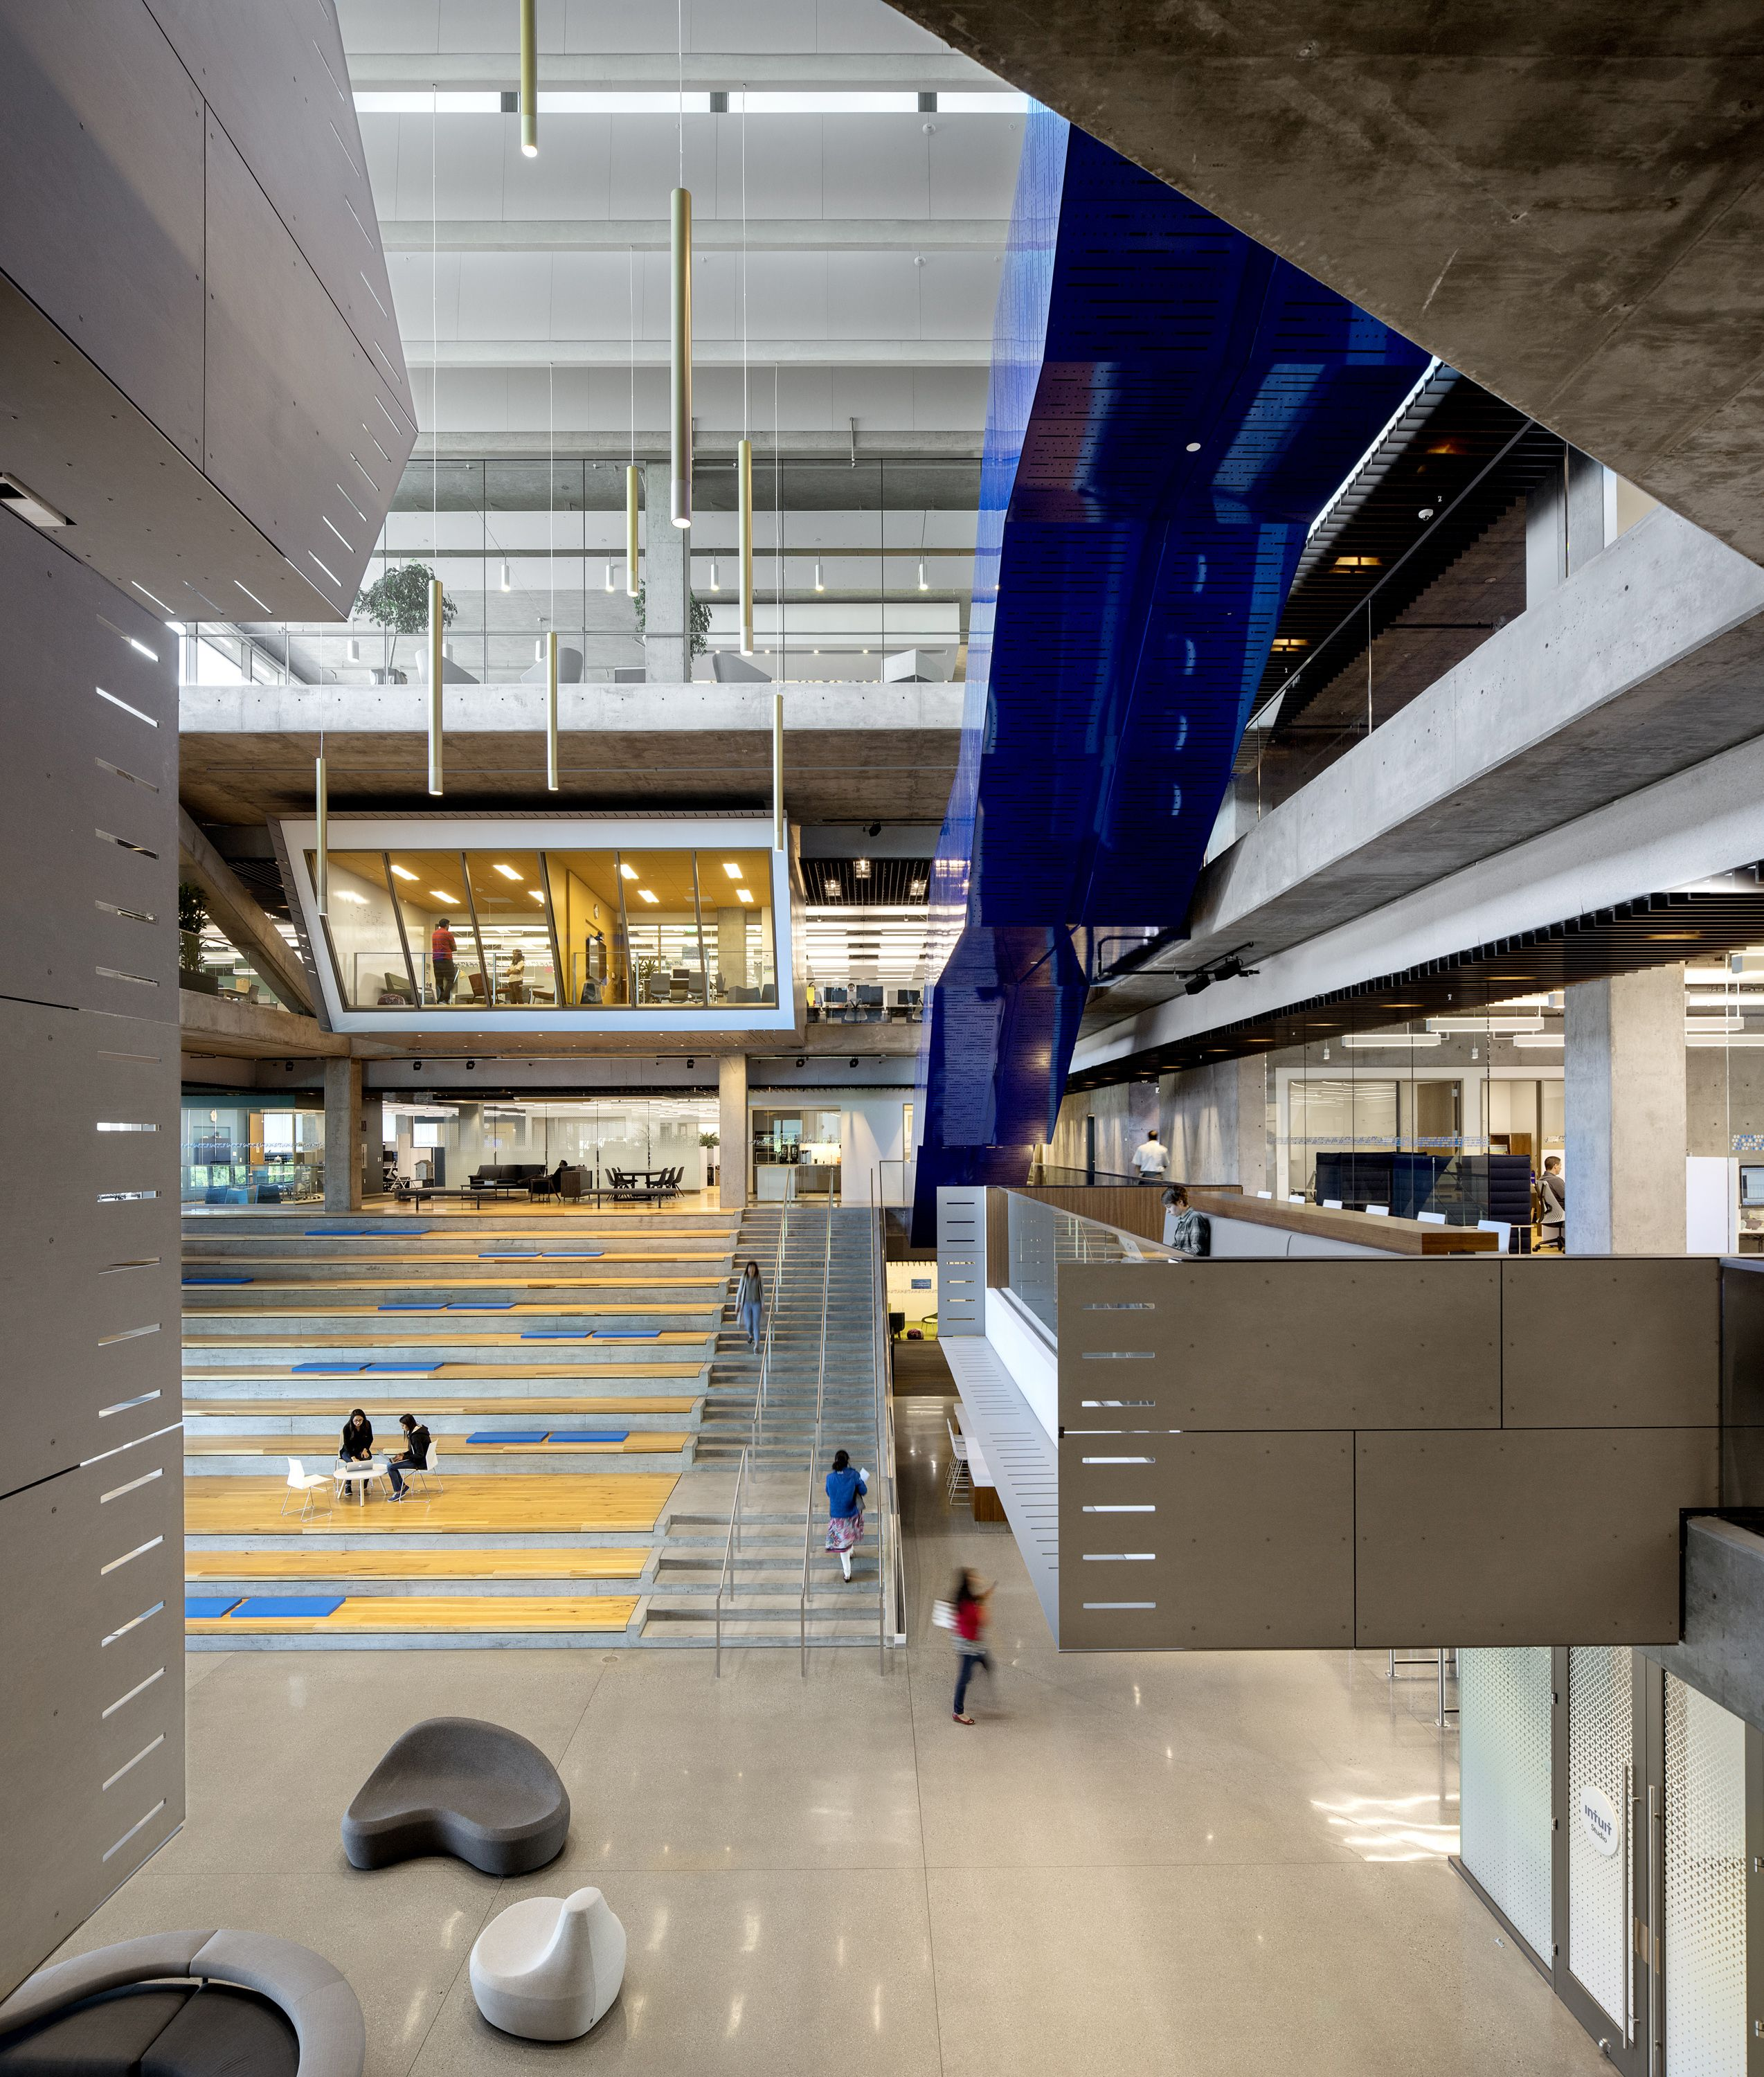 Clive Wilkinson Architects Intuit Marine Way Building Building